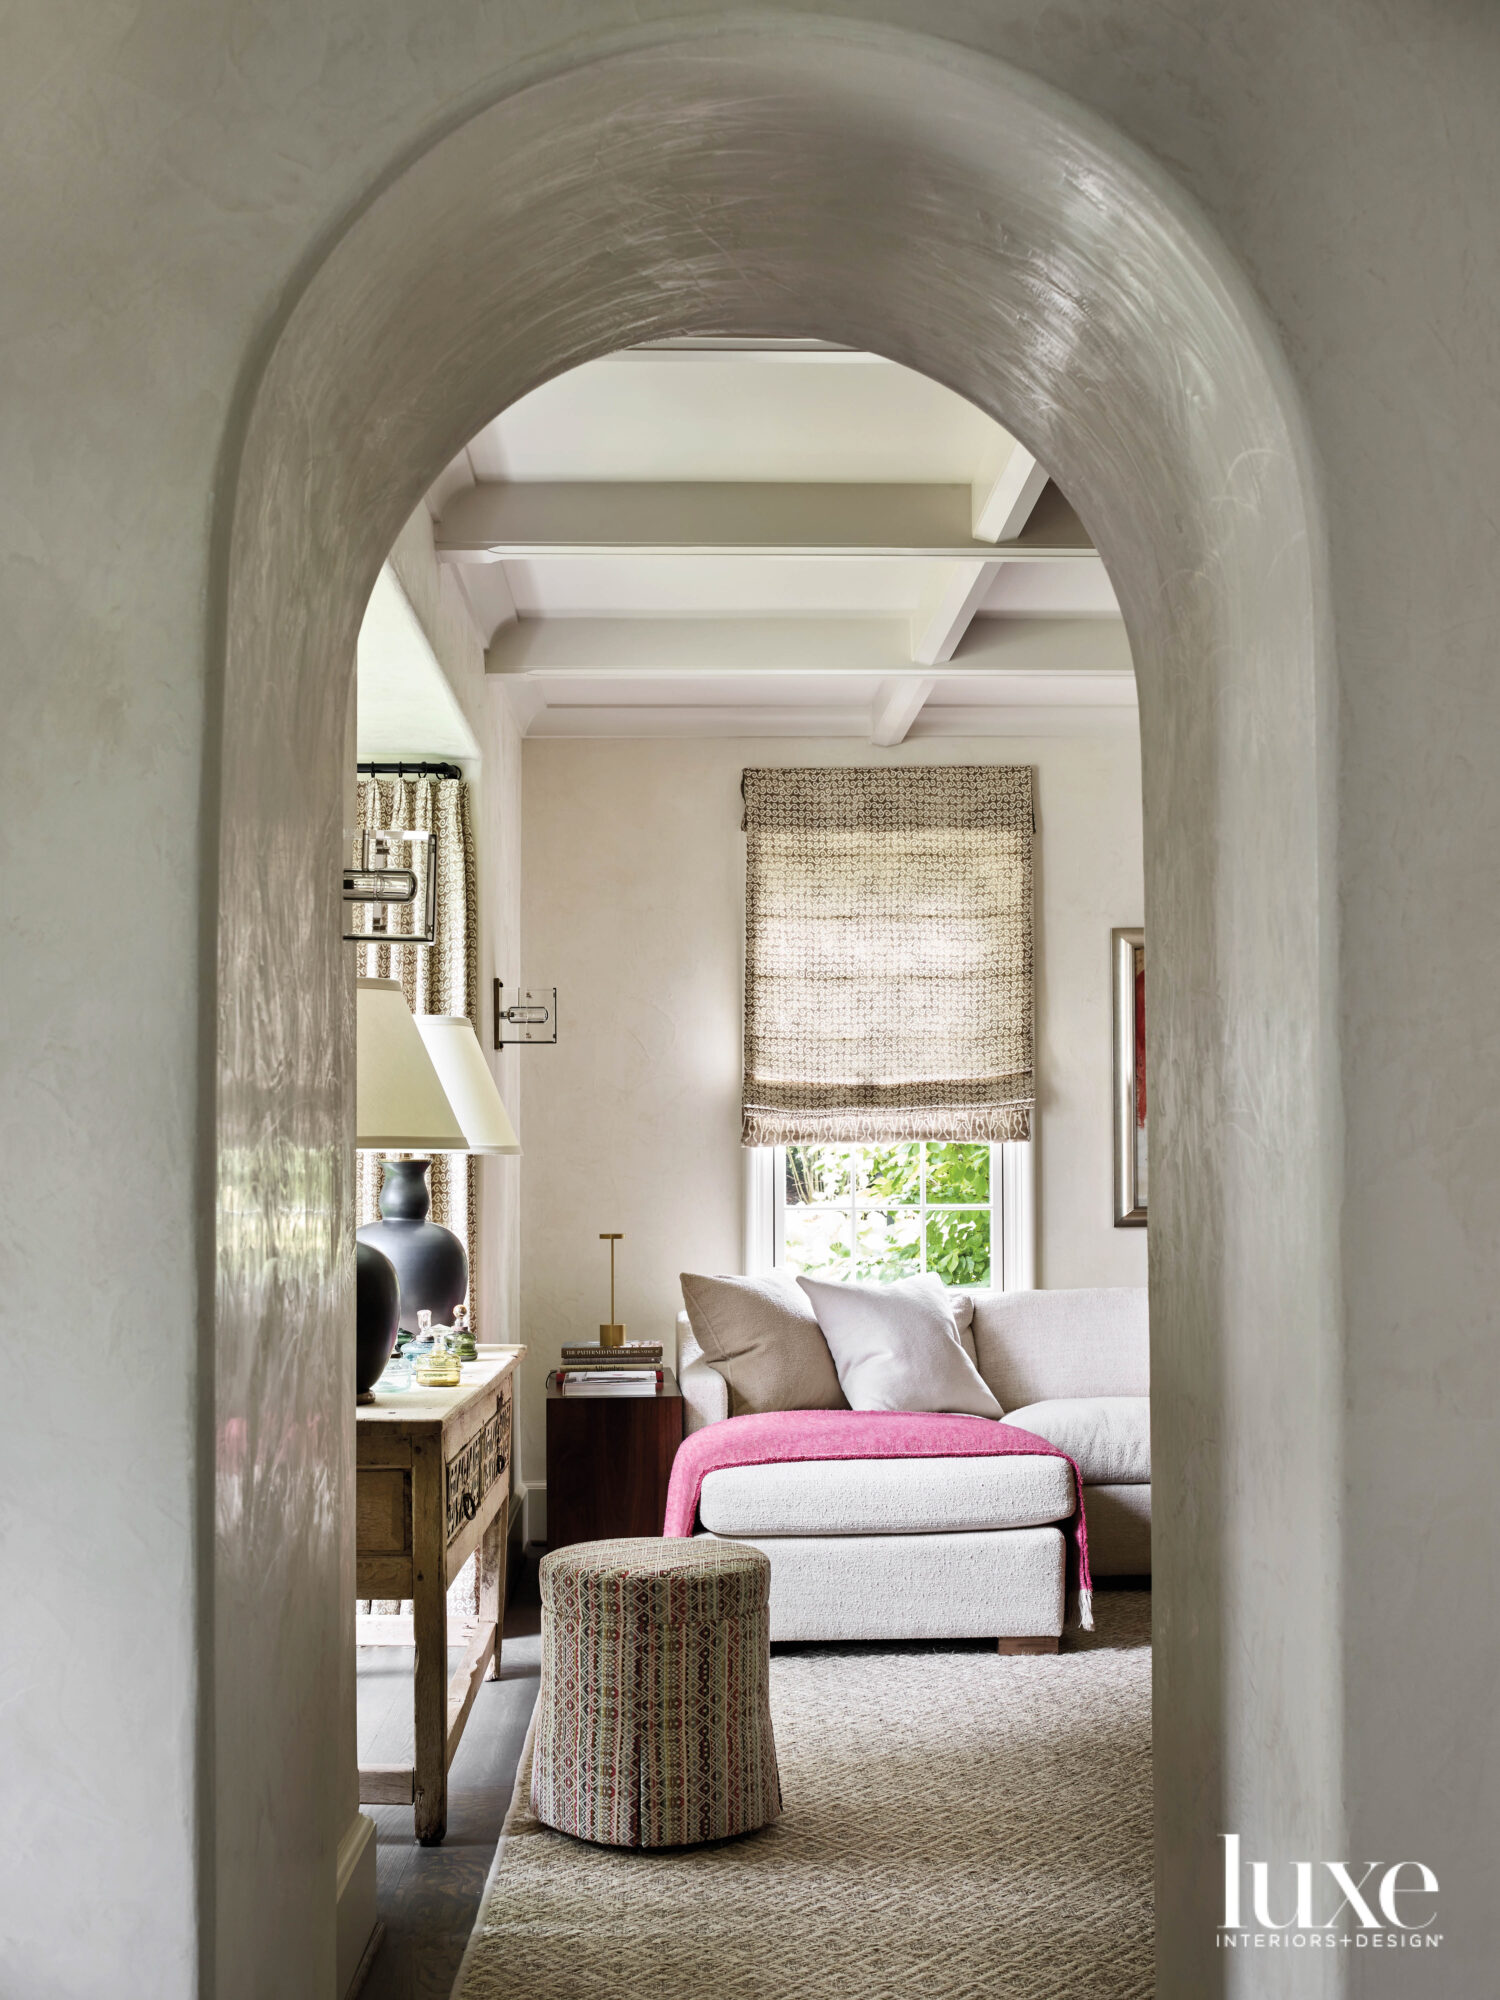 Arched doorway peering into a...